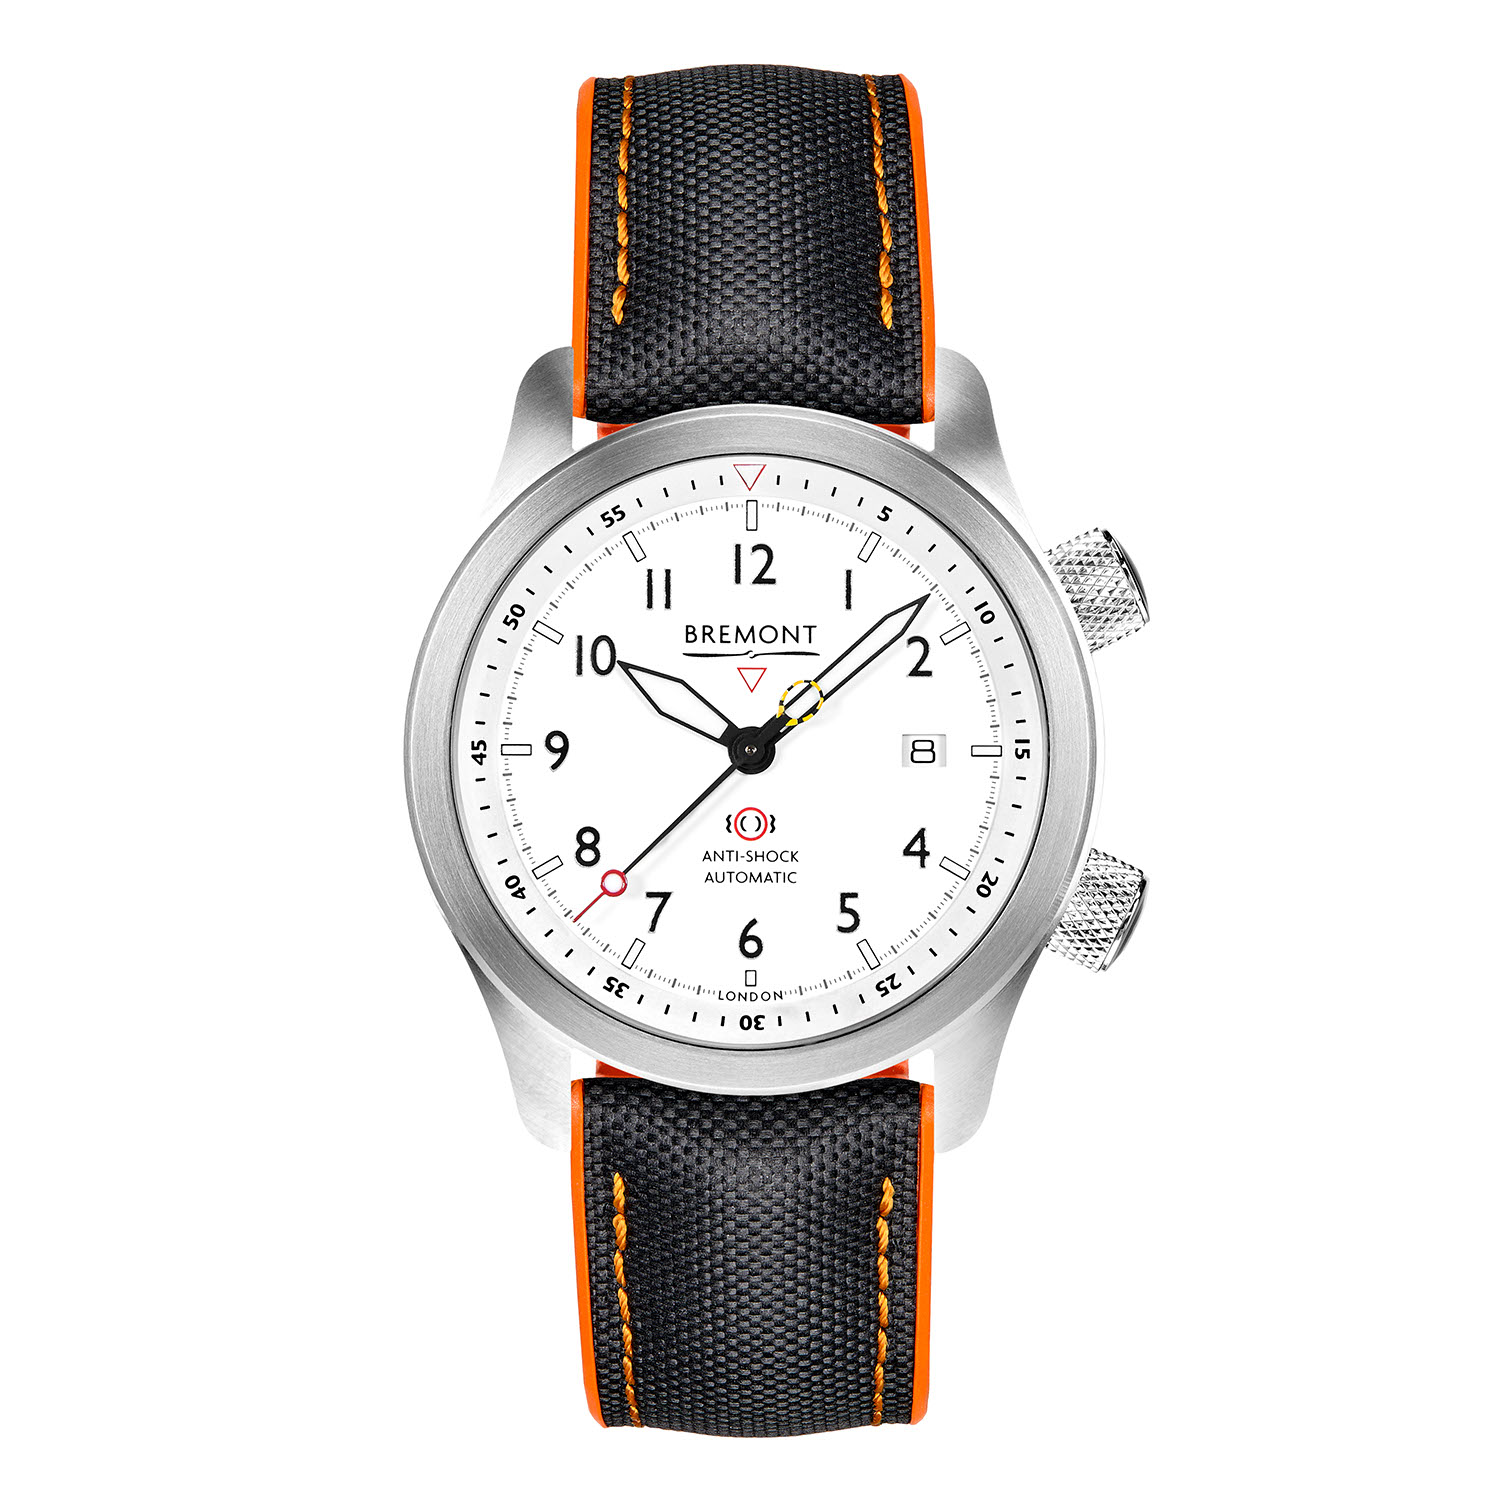 Bremont's updated 2020 MBII in the white dial variation